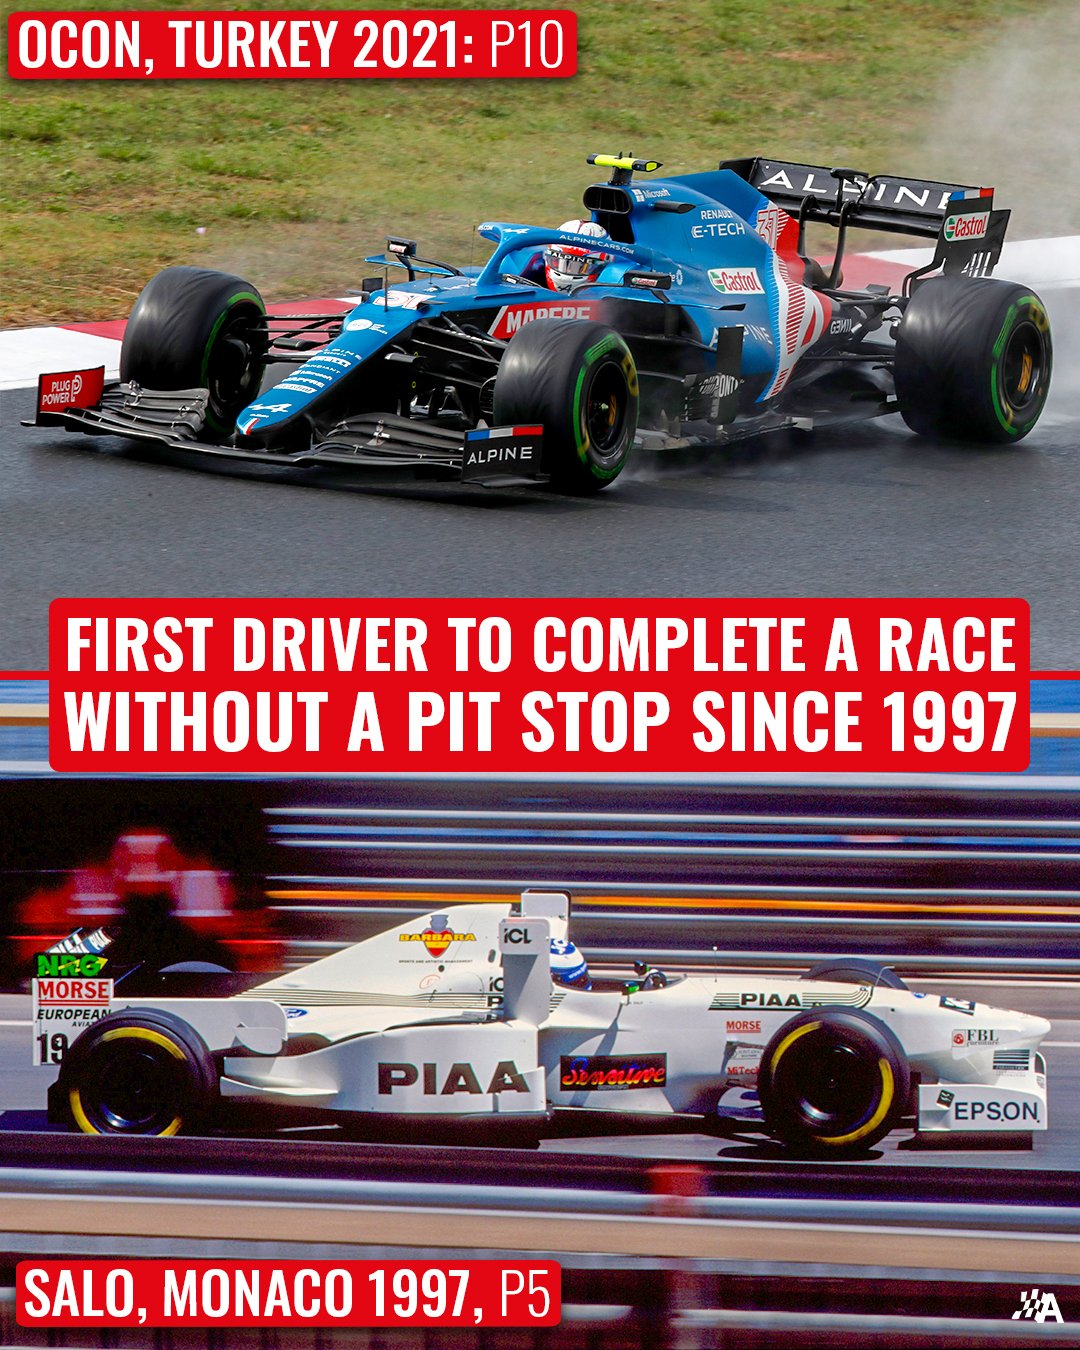 It's been a while since a driver completed a race that wasn't red-flagged without making a single pit stop 🤯  The last time we saw this was Mika Salo scoring Tyrrell's final points in #F1 👏  #Formula1 #TurkishGP #Autosport https://t.co/ByGxJ1SYtf